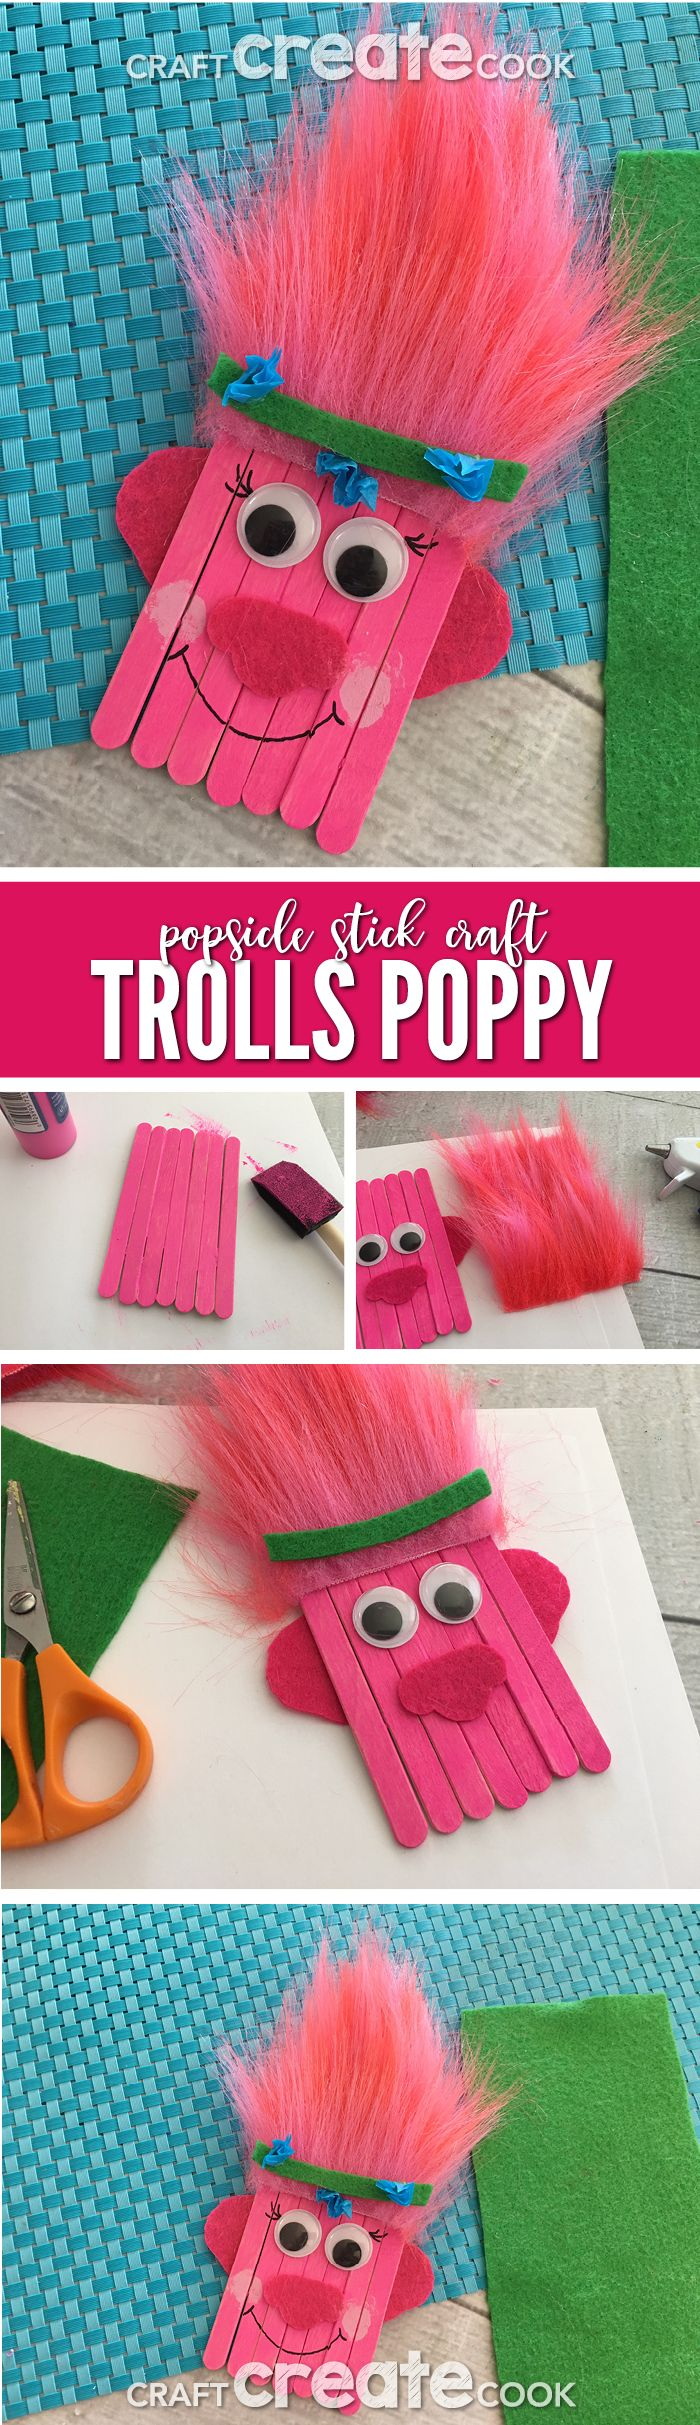 craft projects for kids 443 best images about popsicle stick crafts on 4010